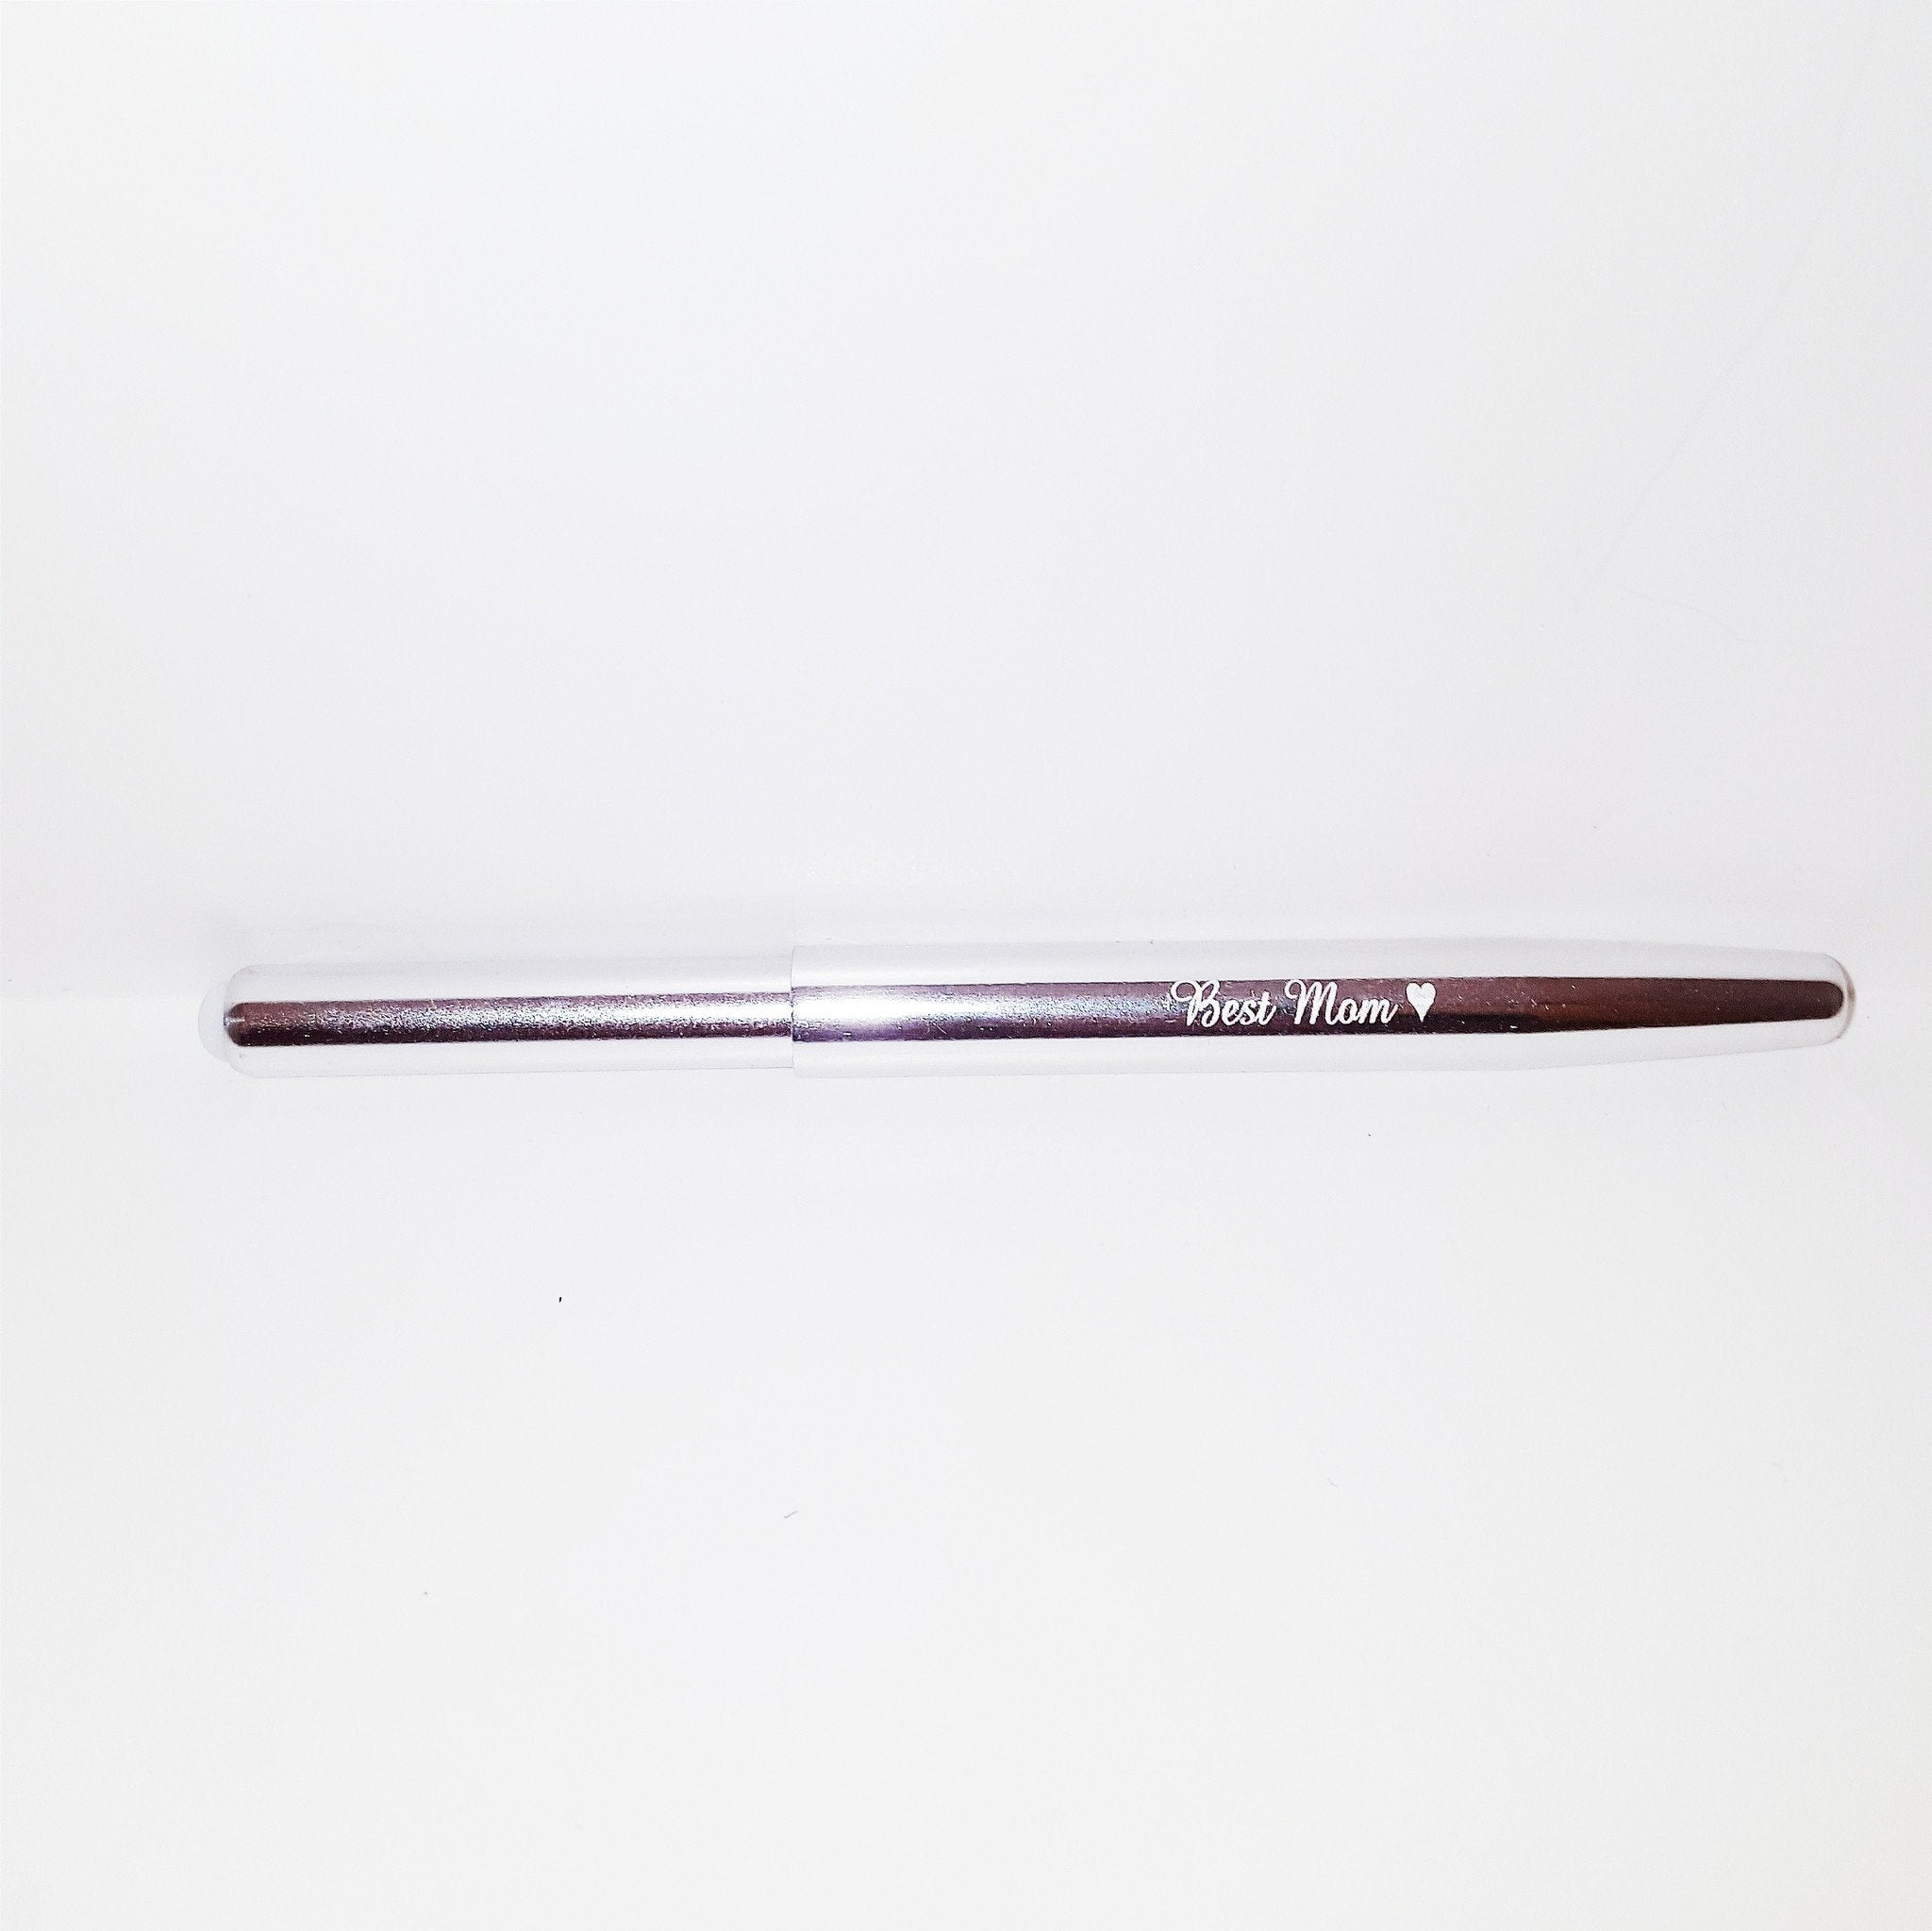 My Makeup Brushes - Best Mom Retractable Lip Brush